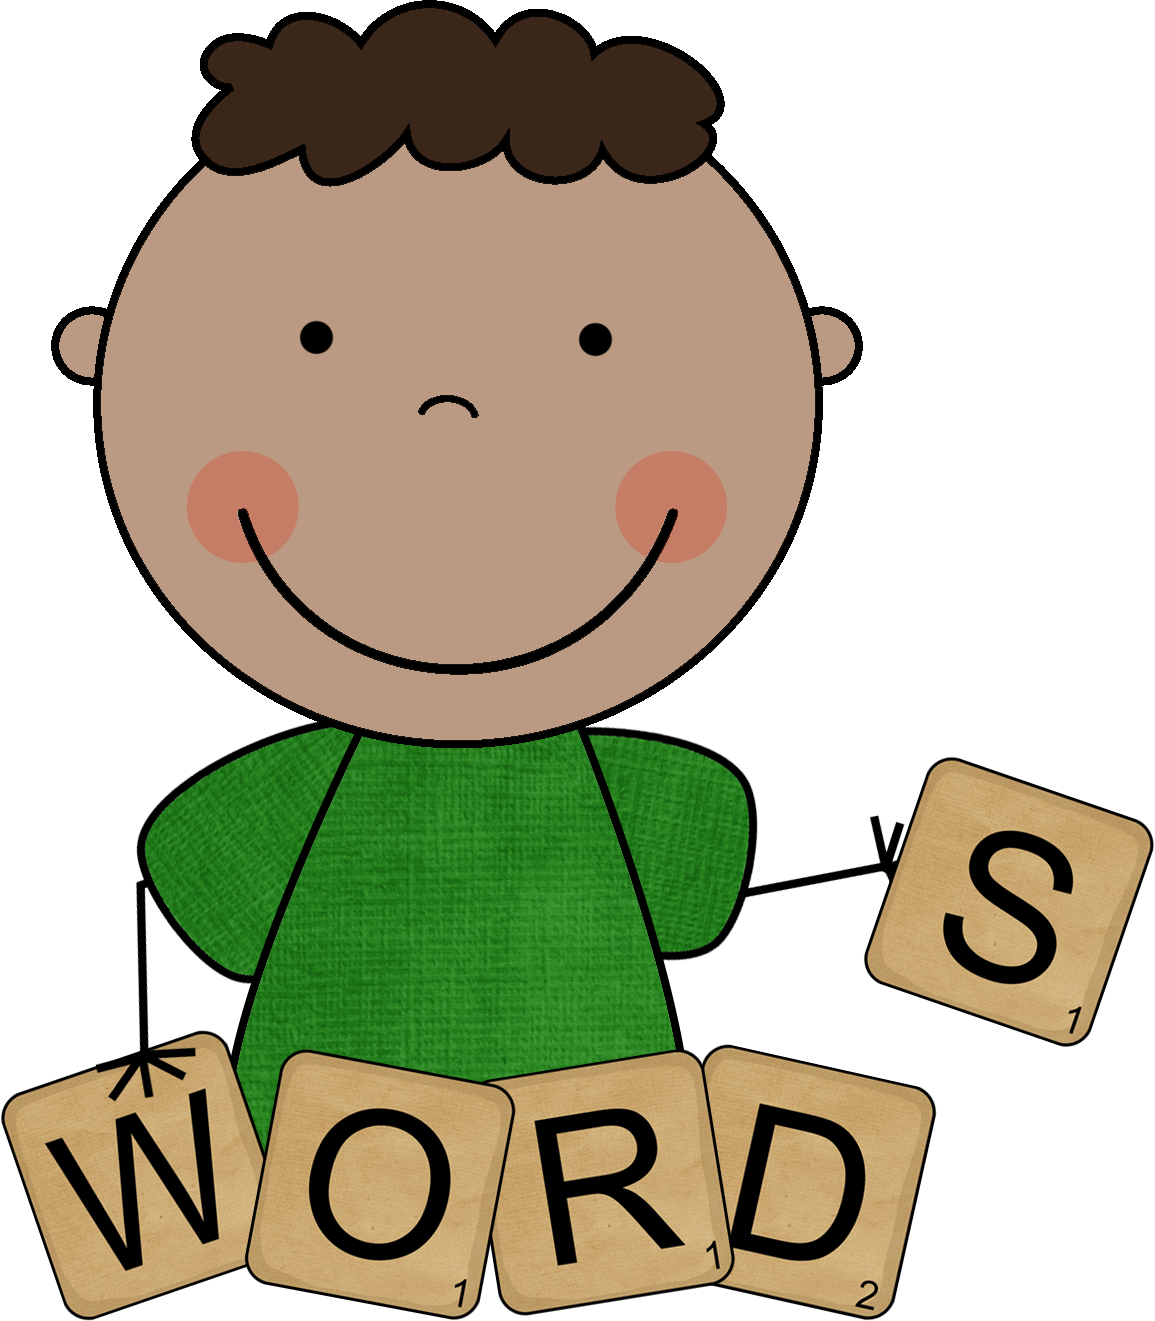 Word Work Clip Art Free 1155 x 1321